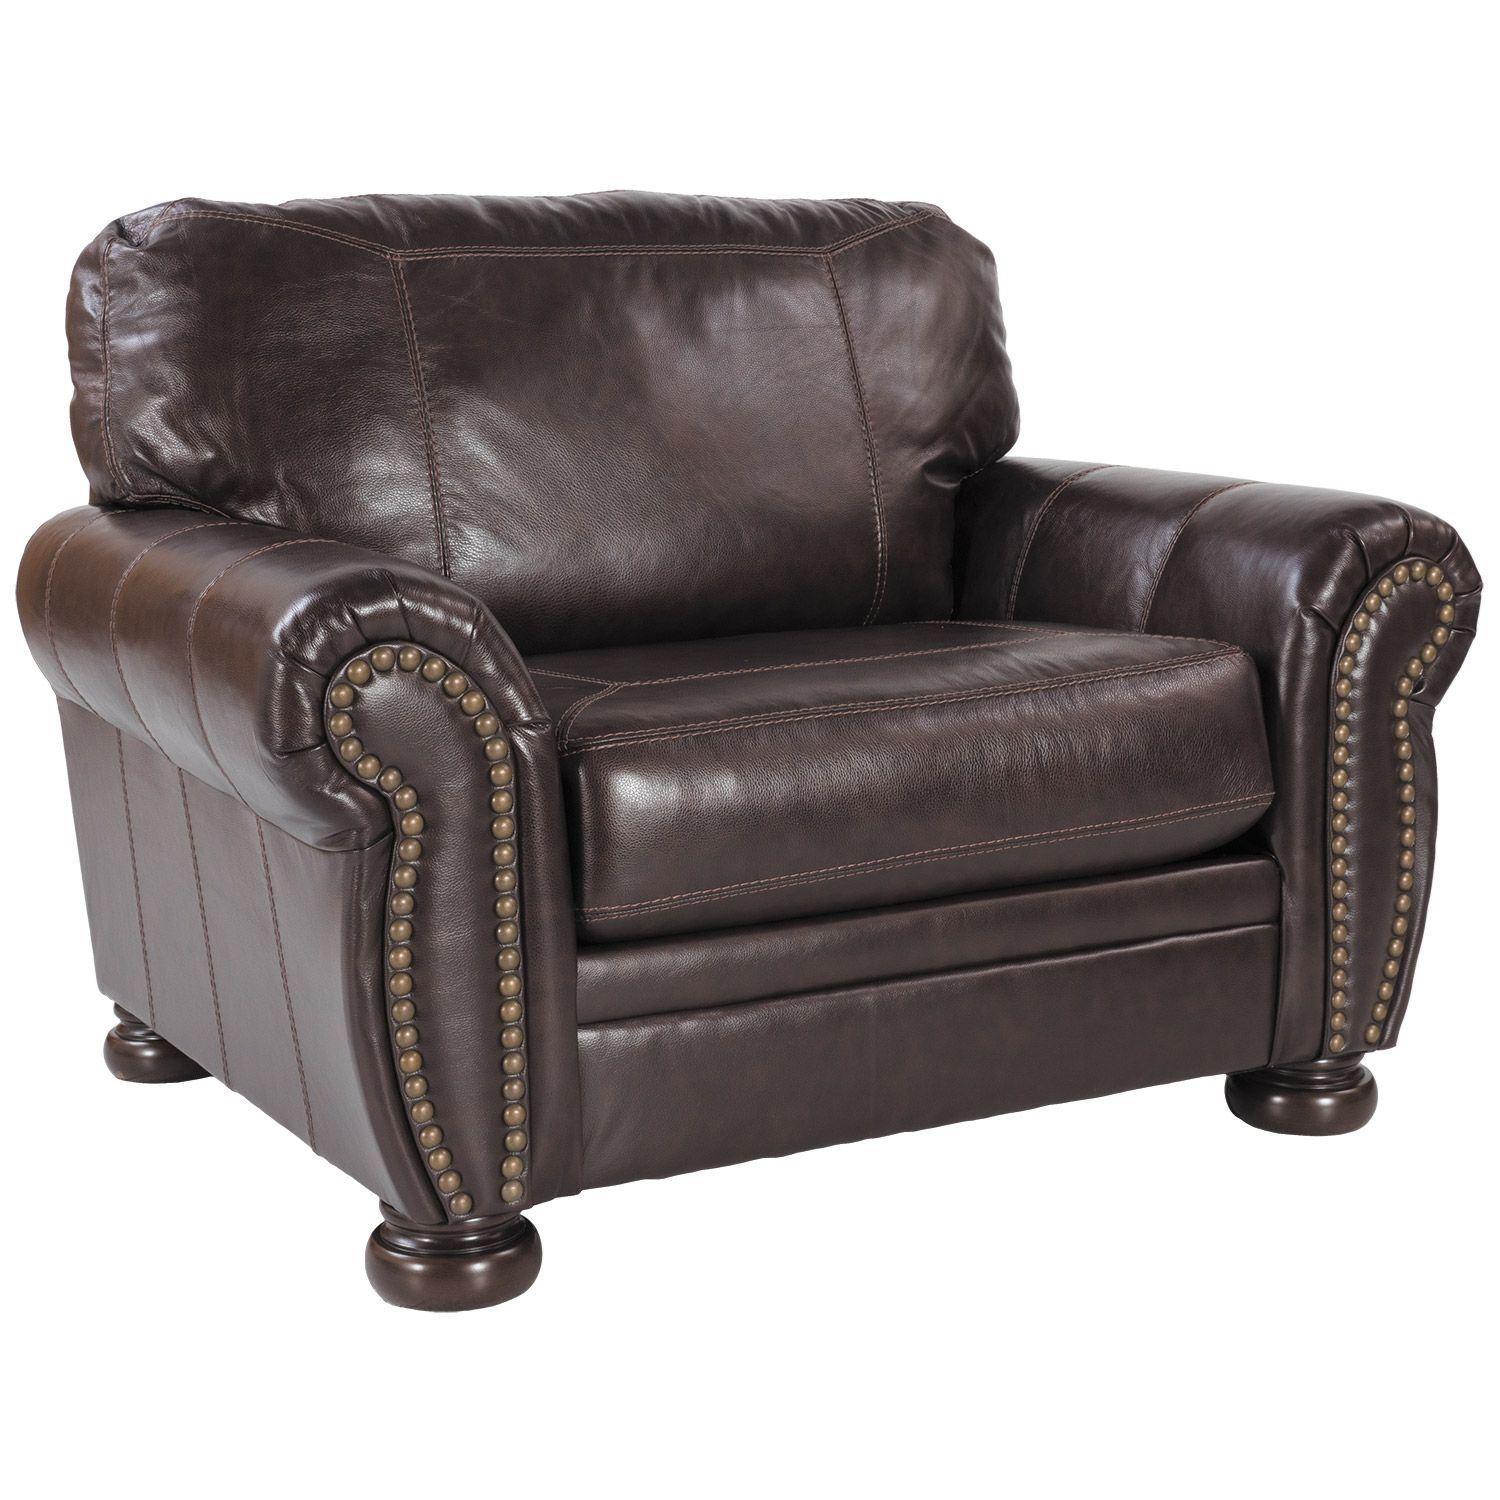 Banner Leather Chair 5040423 Ashley Furniture Afw Com